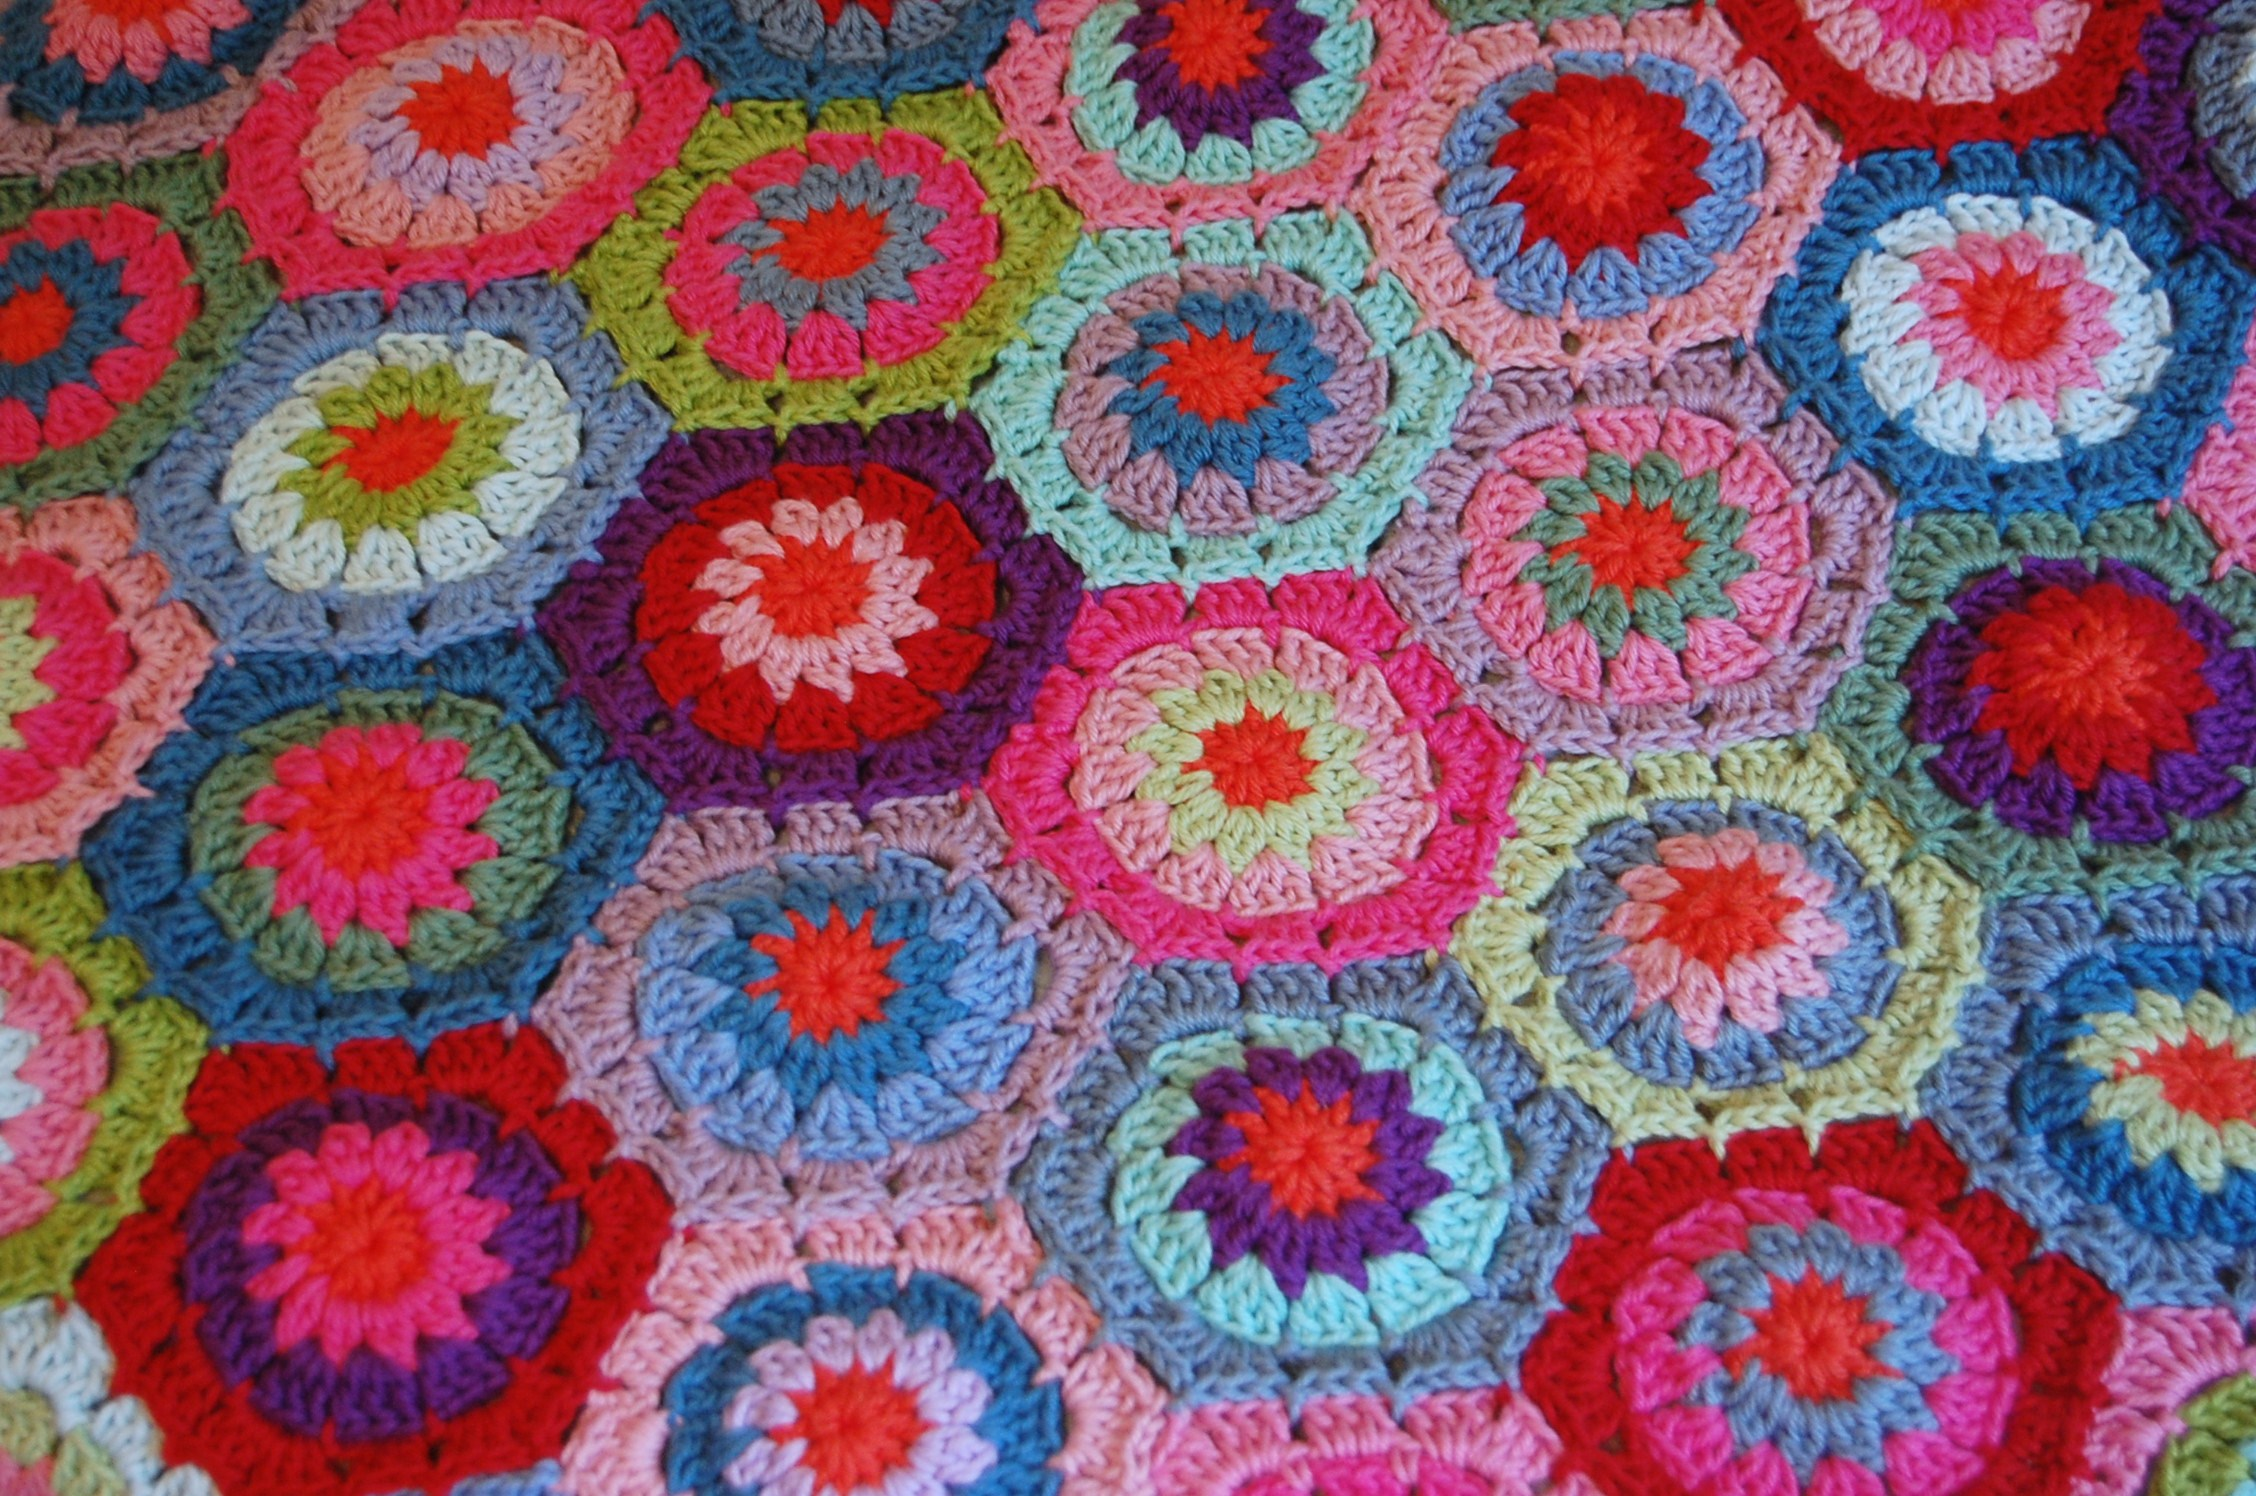 Crocheting Hexagons : this entry was posted in crochet crochet hexagon blanket projects